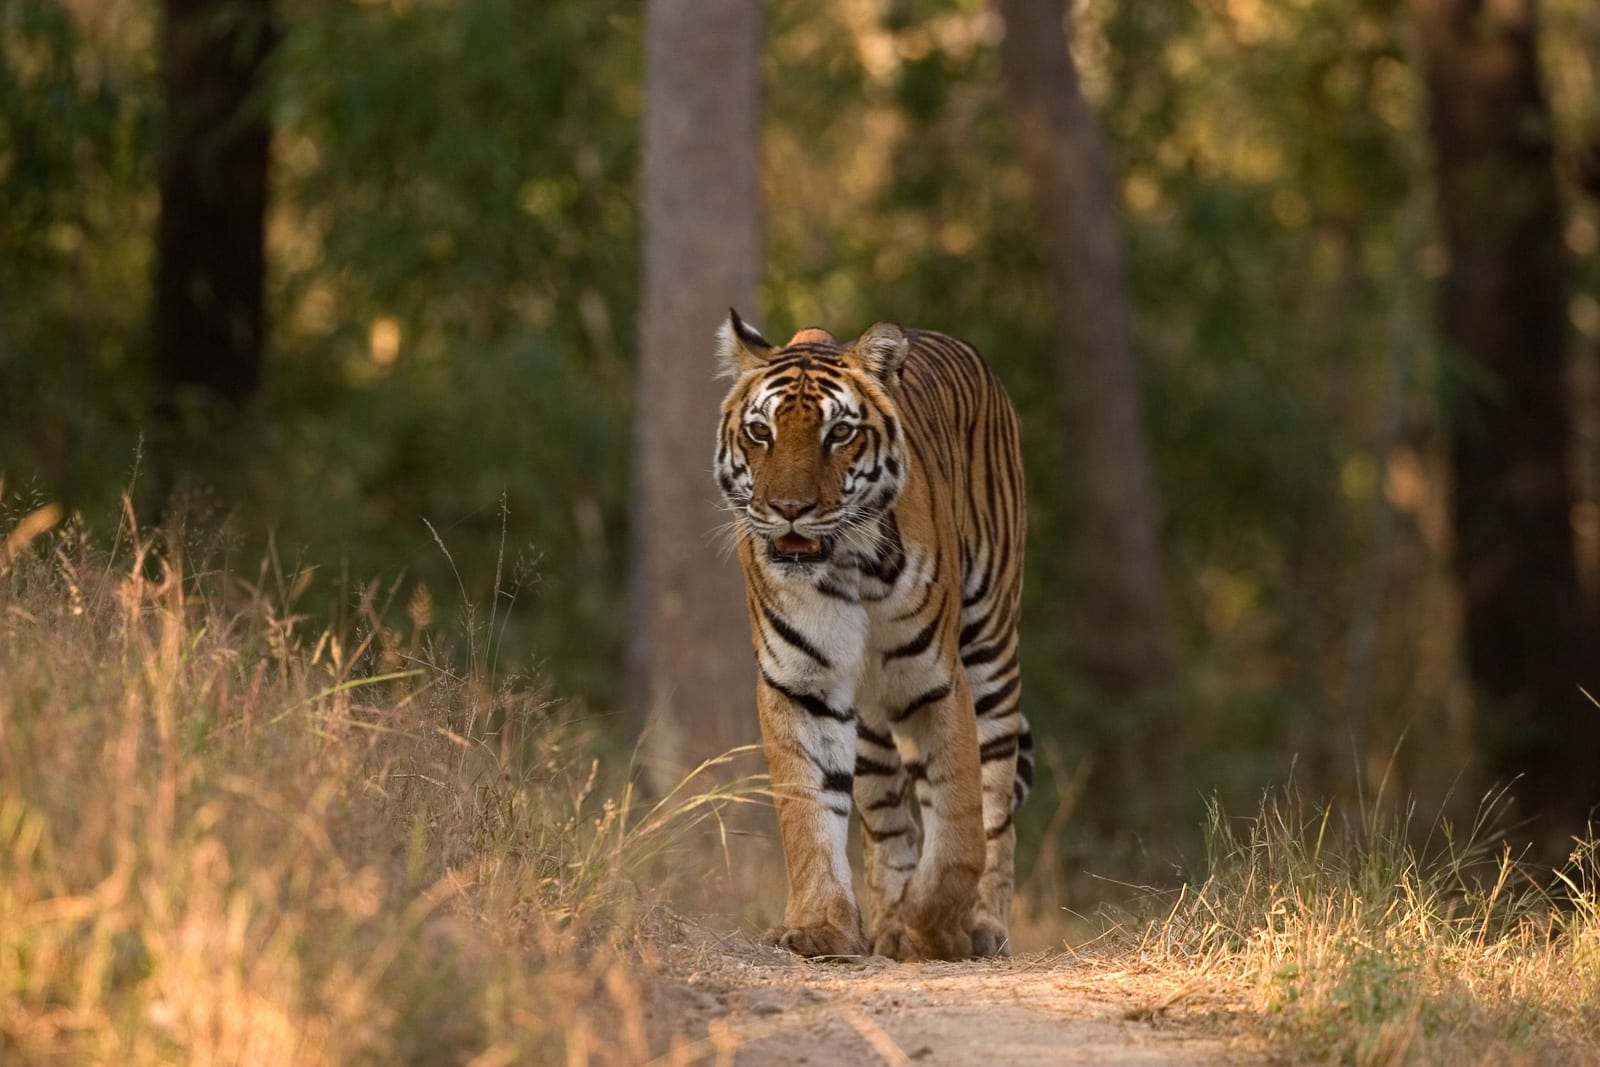 India's tiger population has been consistently rising since 2006 but its habitat and corridor faces threat from mining activities. Photo: Kalyan Varma/CC BY-SA 4.0